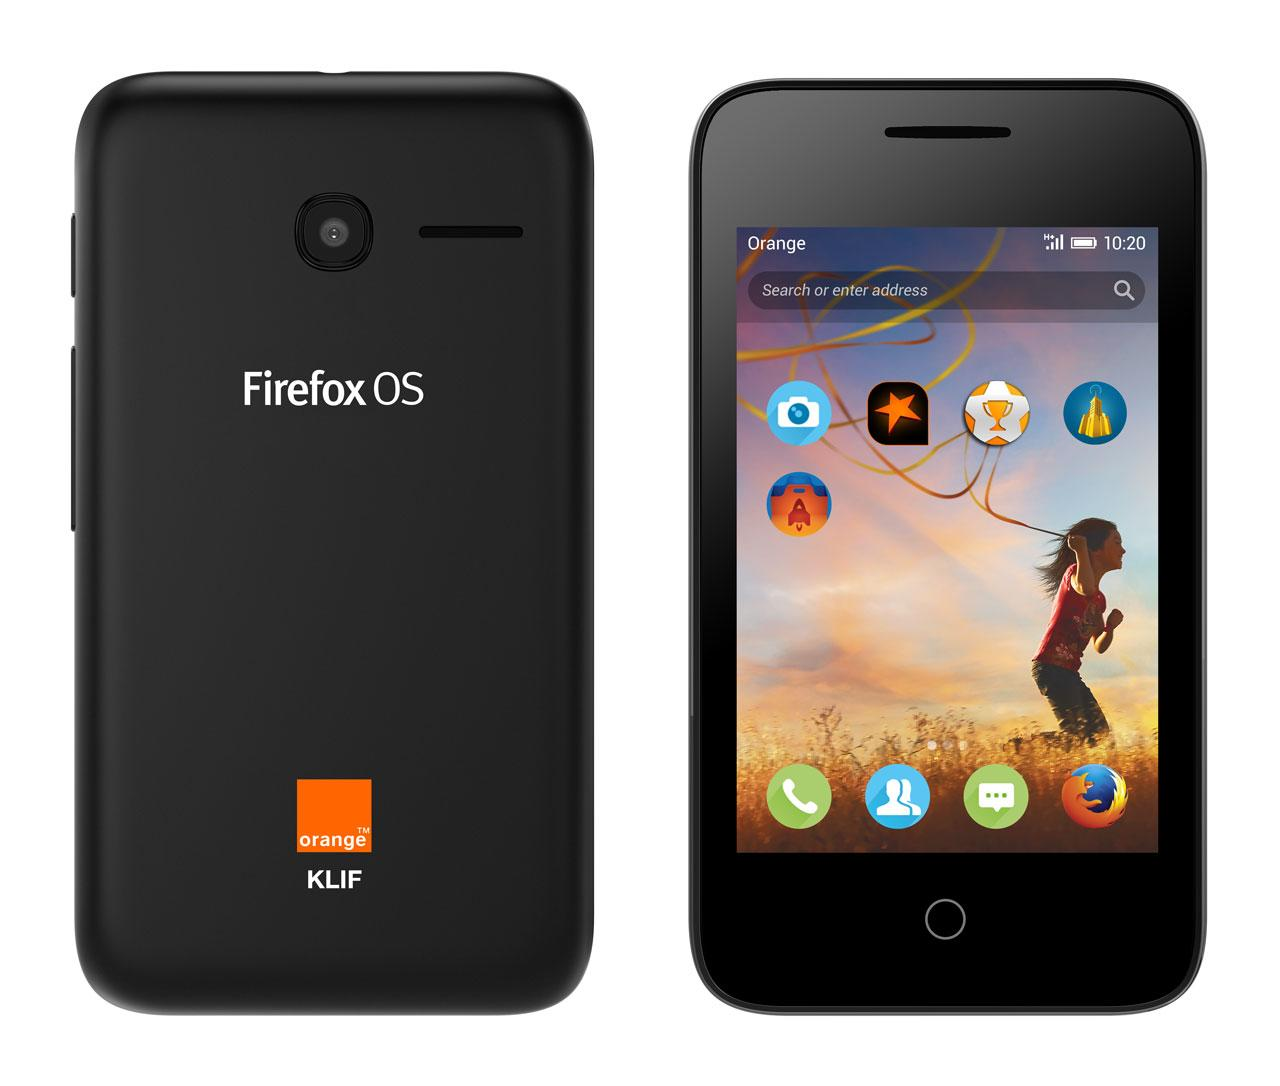 Firefox OS and Ubuntu Touch: the emergence of alternative mobile platforms